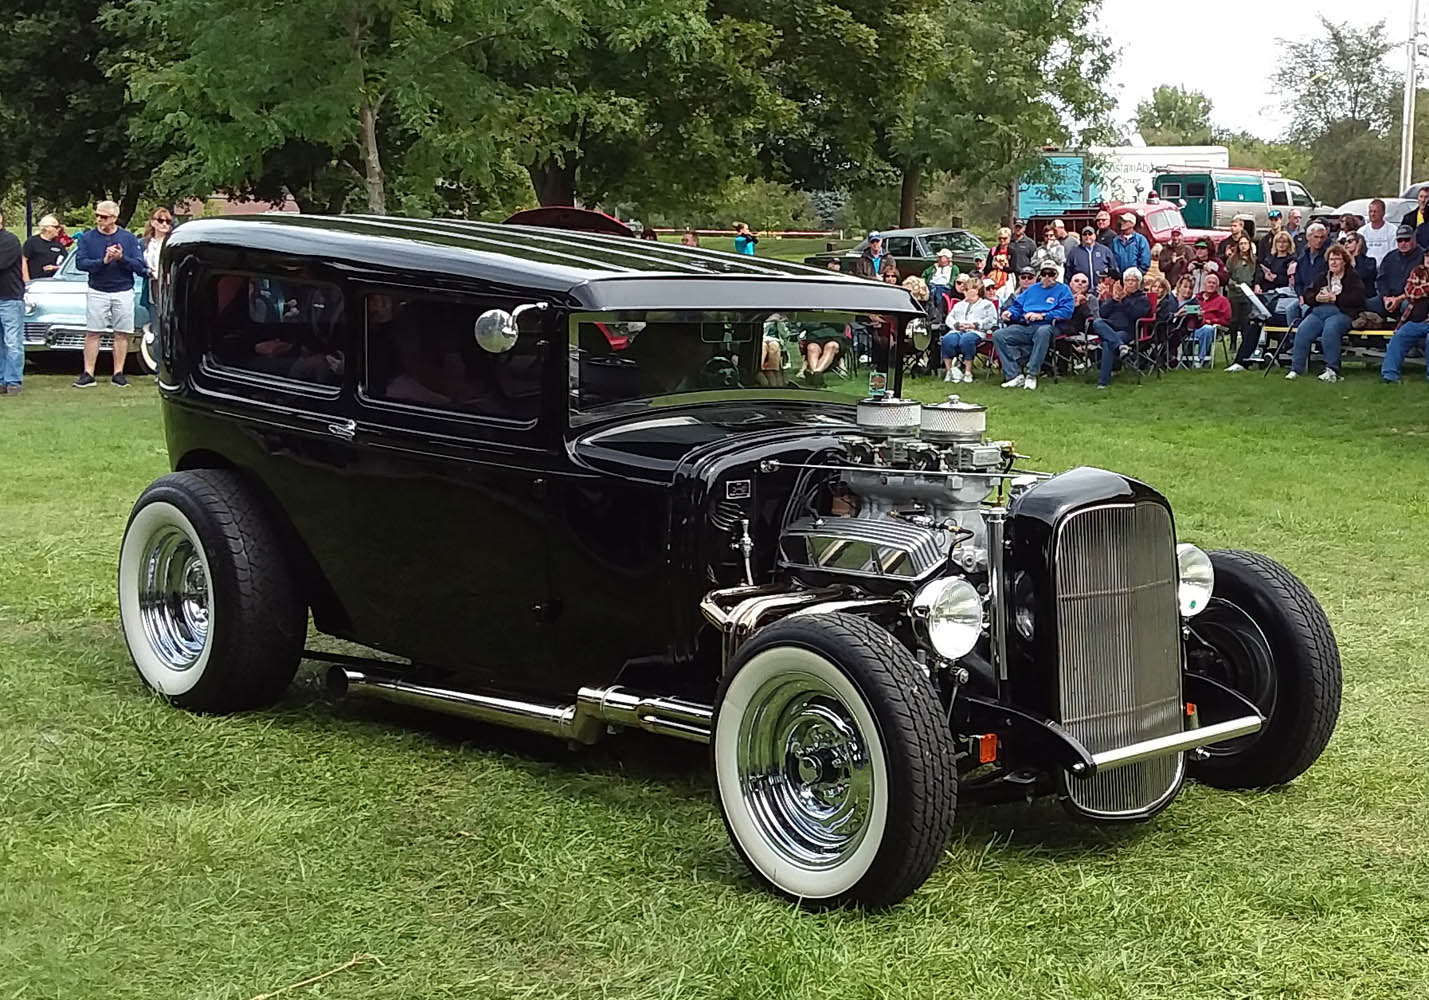 Specialty- 1931 Ford, Randy Herman 1